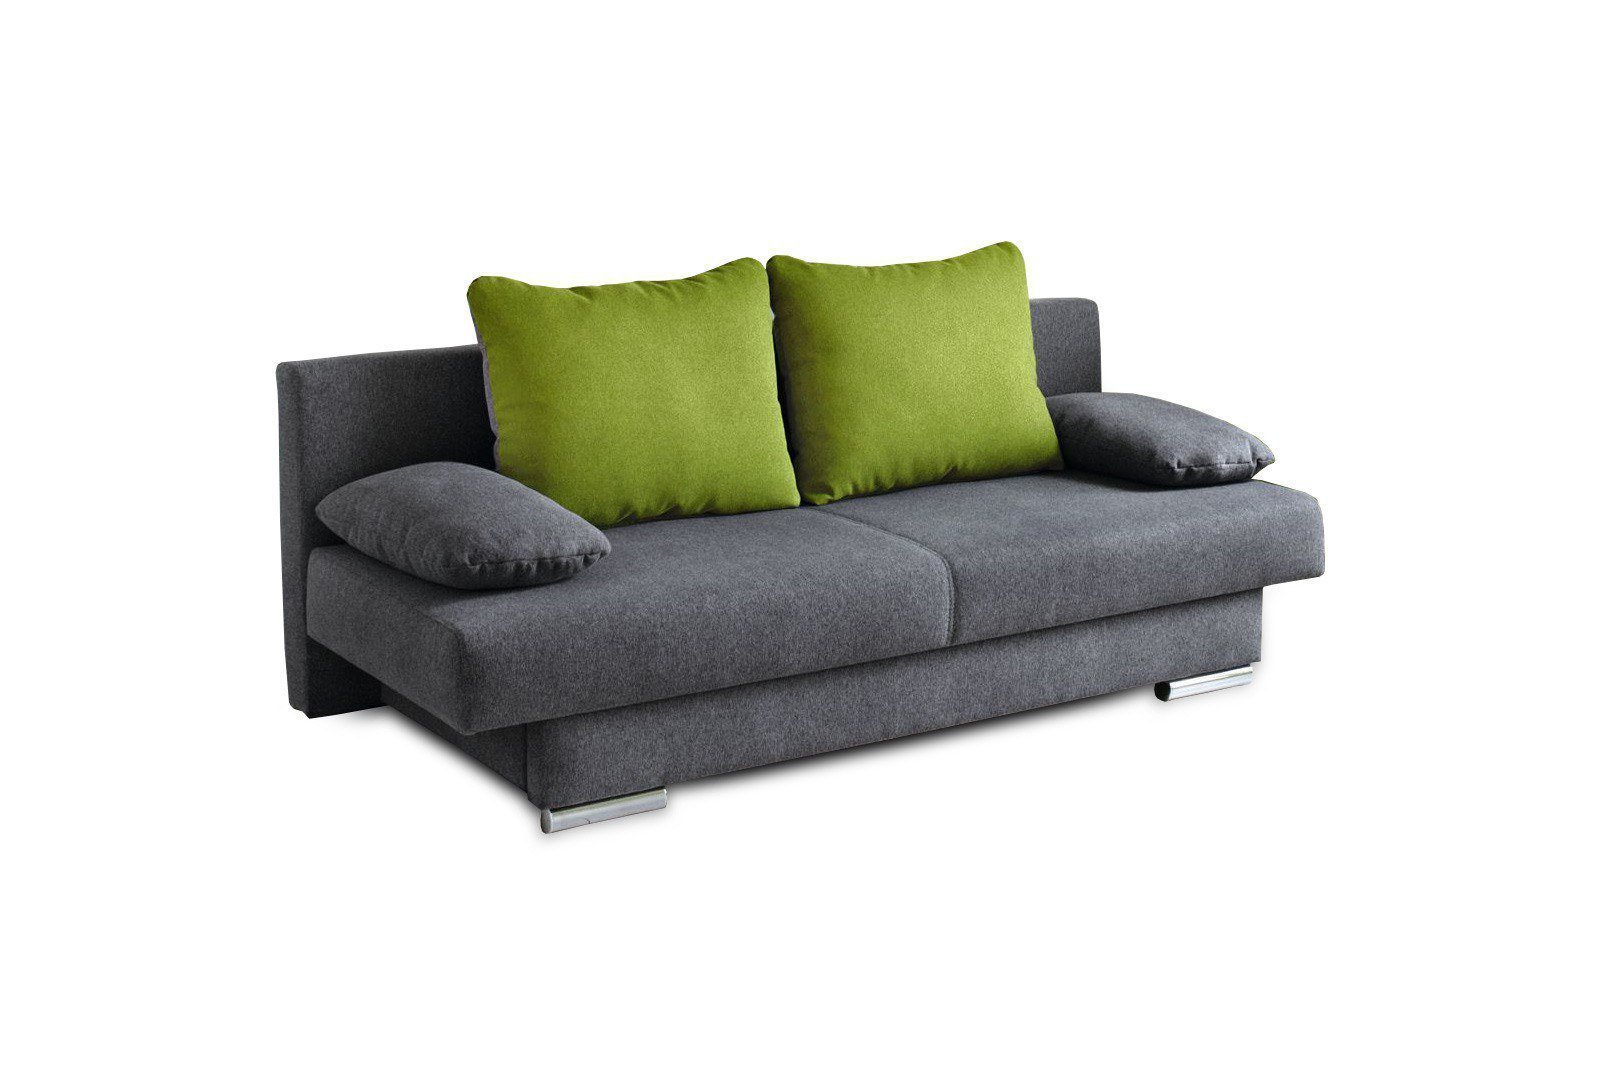 jockenh fer griffin angel schlafsofa in grau gr n m bel letz ihr online shop. Black Bedroom Furniture Sets. Home Design Ideas